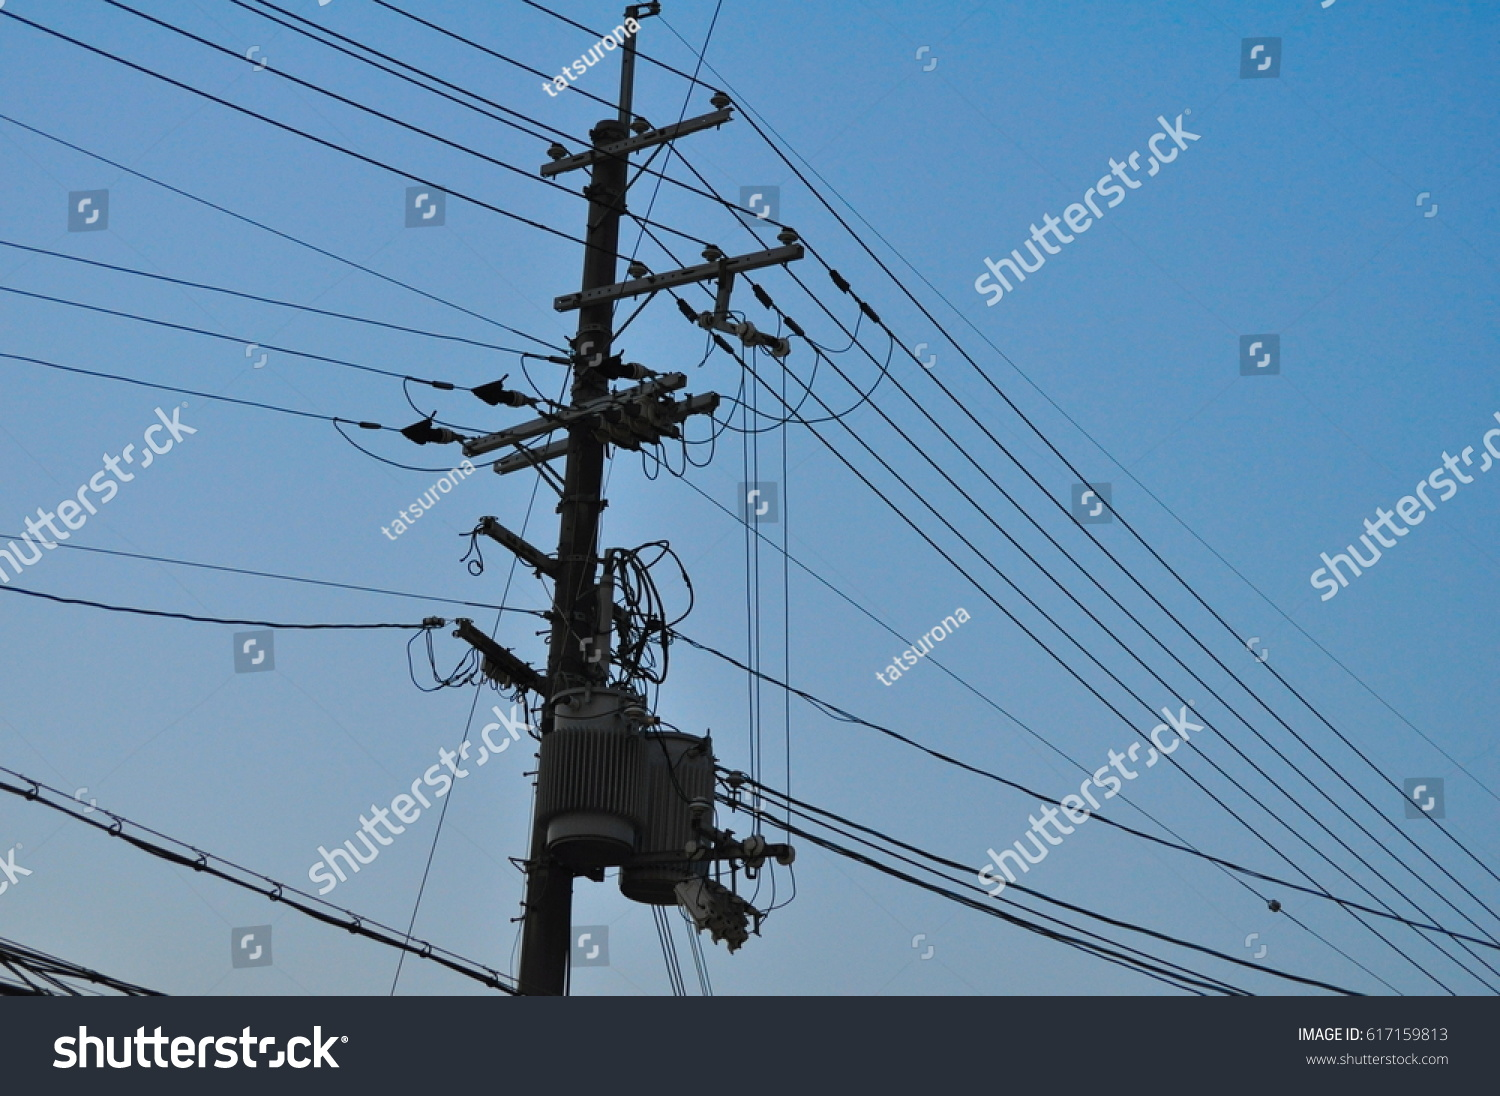 Link Electric Pole Wires Japanese Street Stock Photo (Royalty Free ...